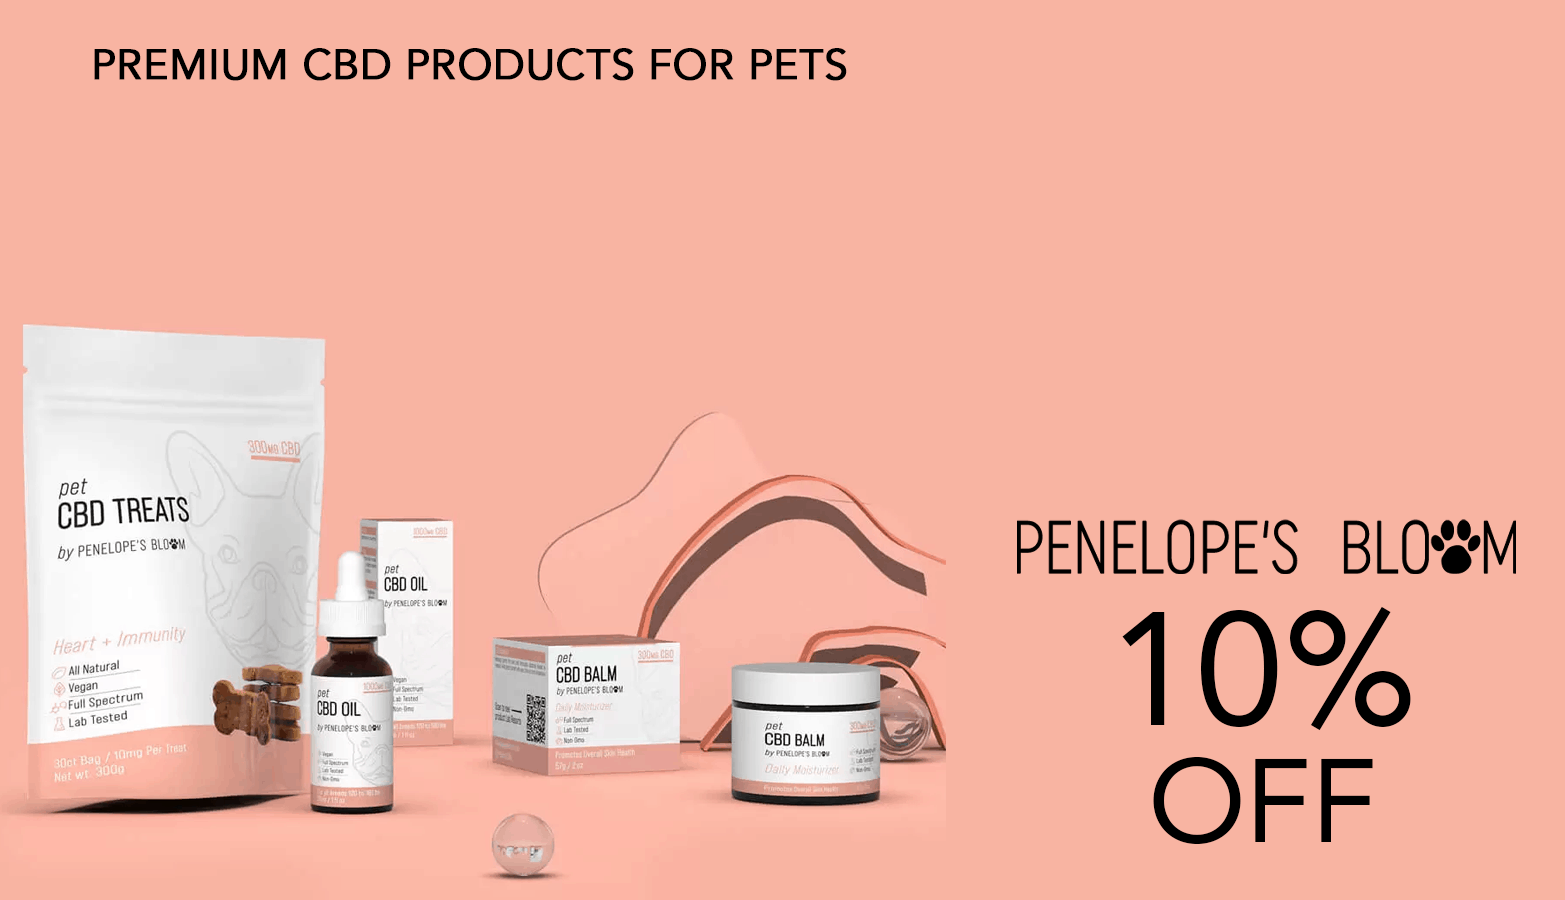 Penelope's Bloom CBD Coupon Code 10 Percent Offer Website